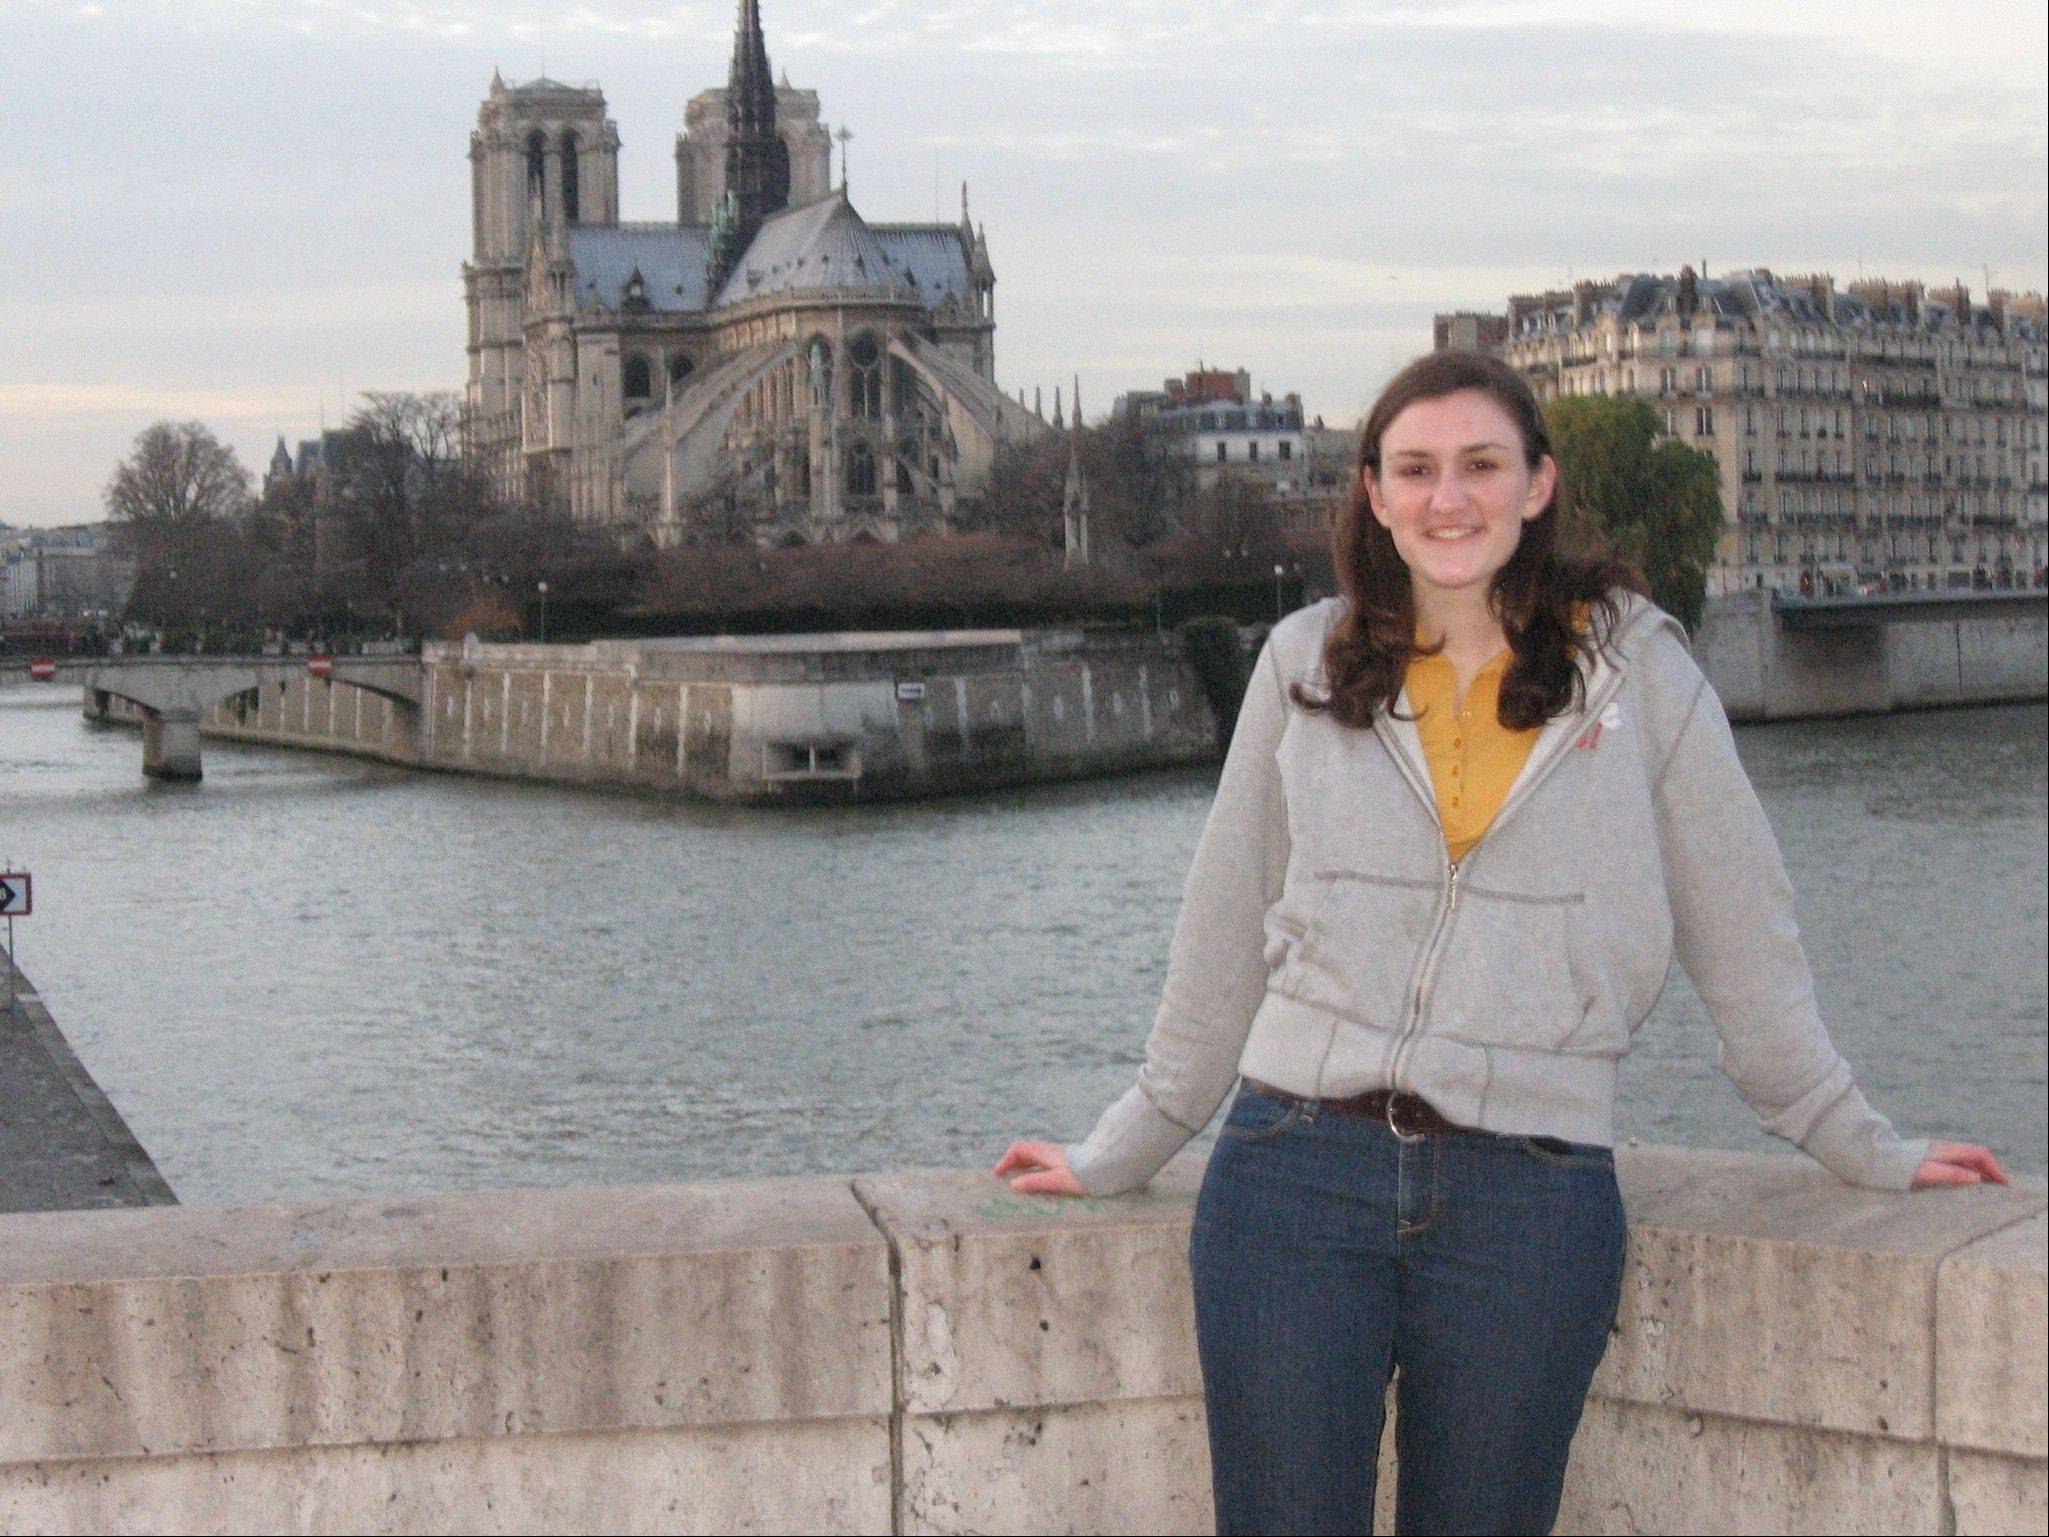 Claire Reising will work as a teaching assistant in Mons, Belgium, just outside of Brussels.